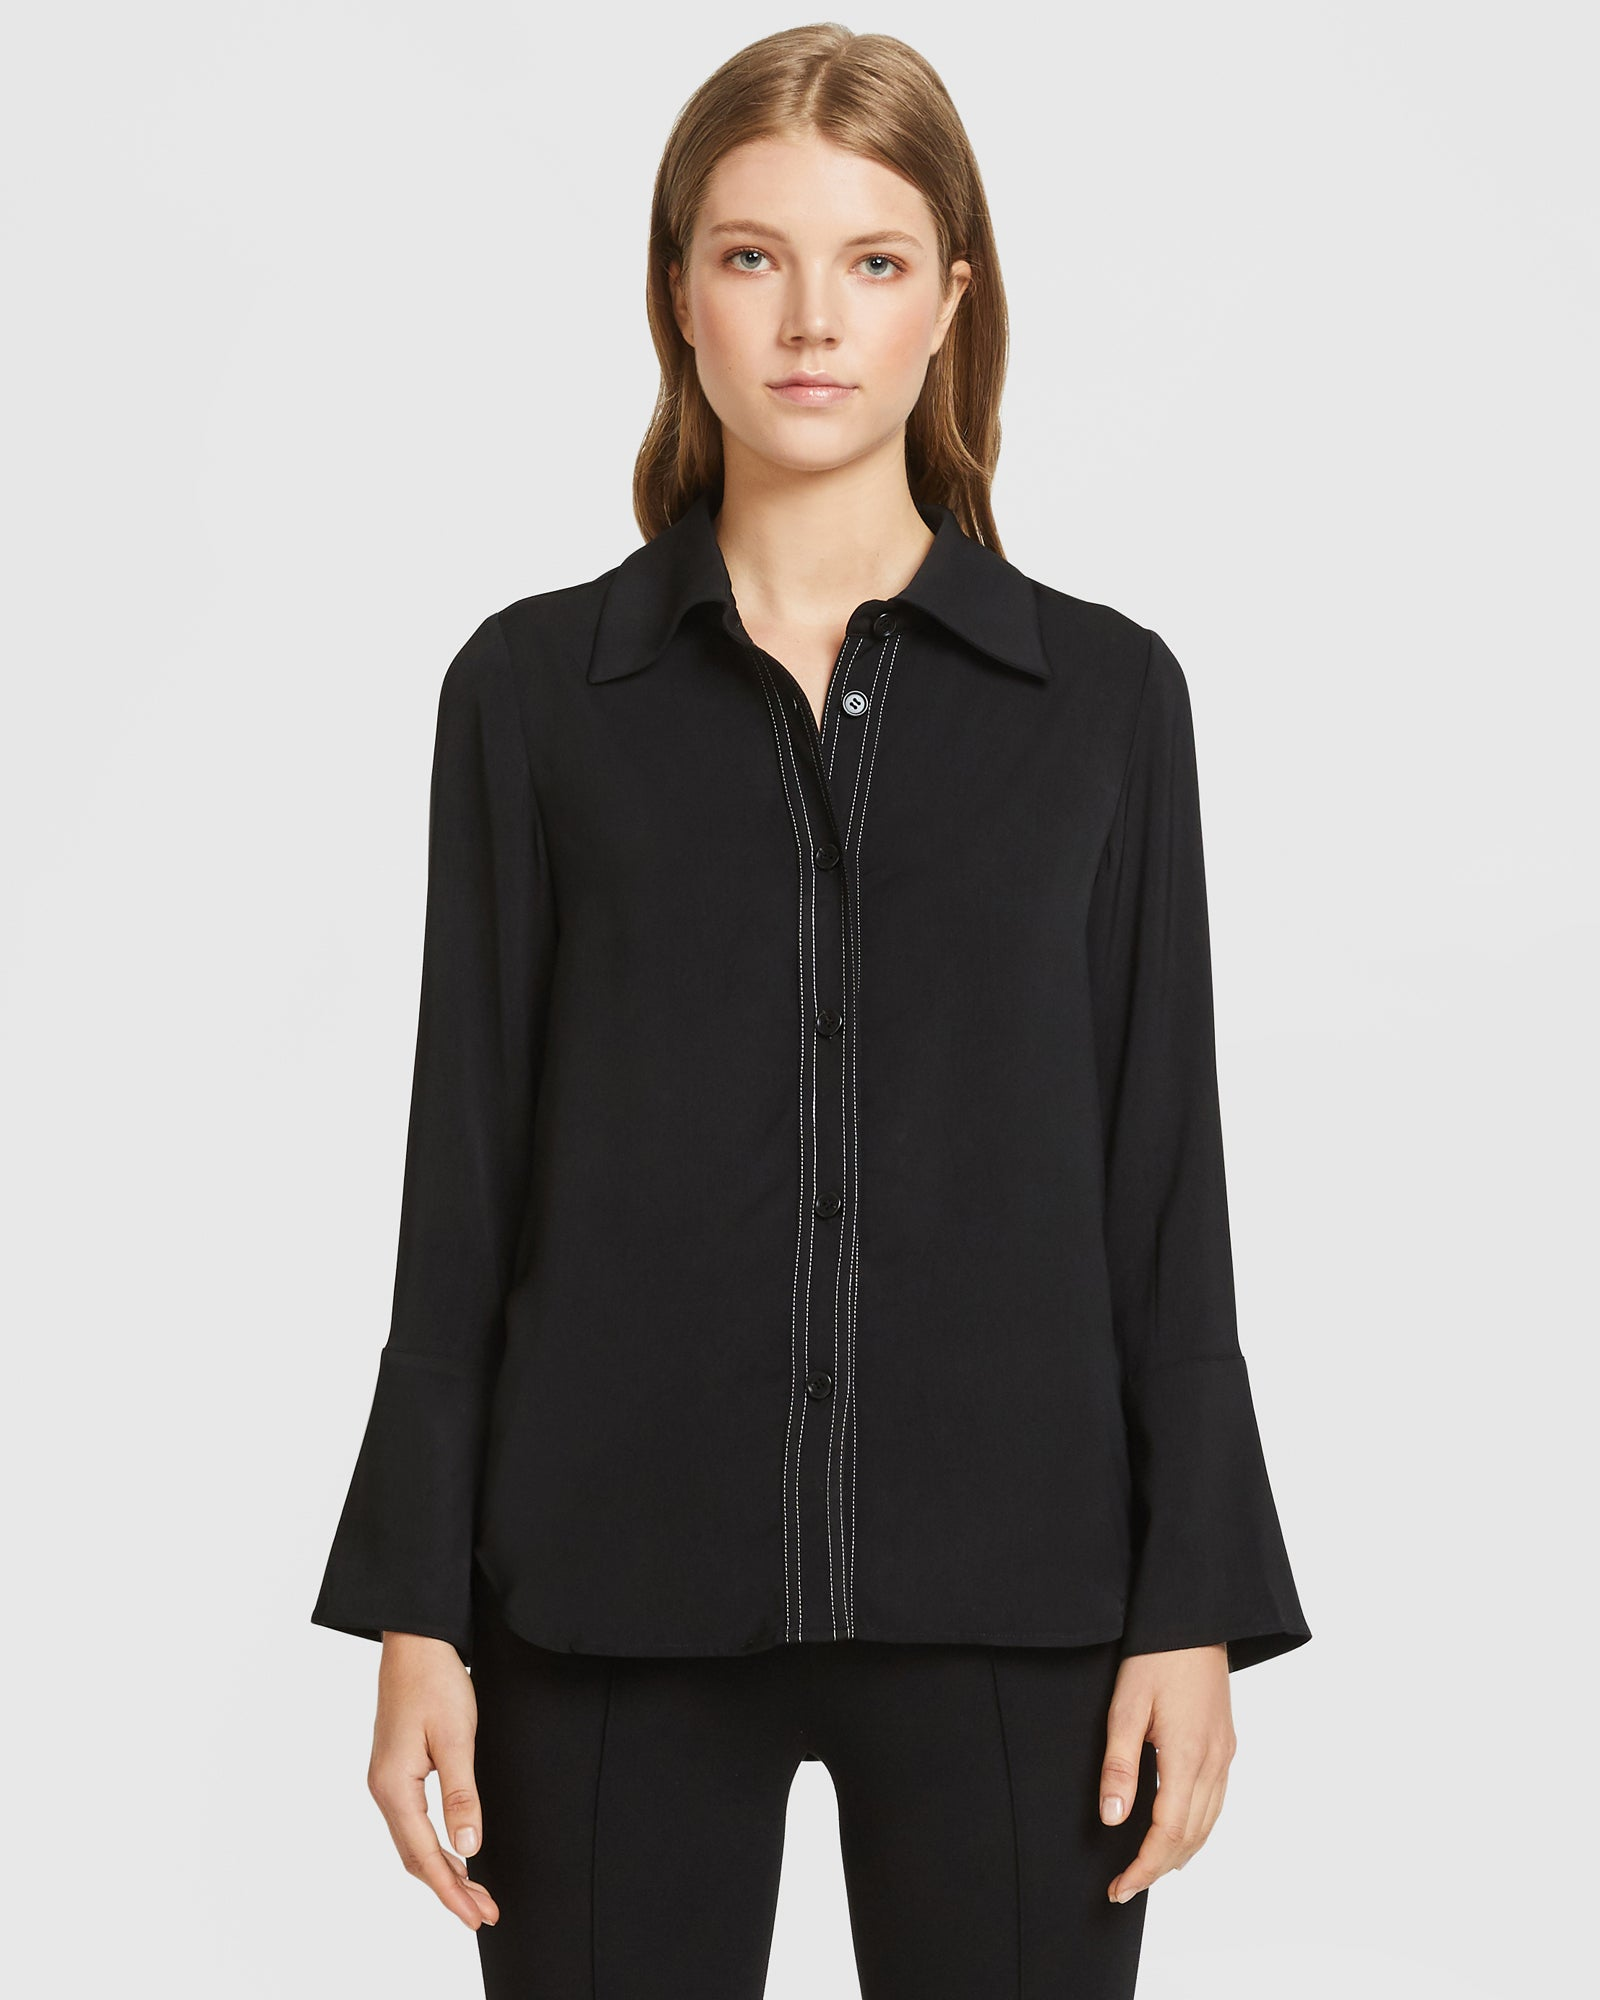 Contrast Stitch Shirt - Black